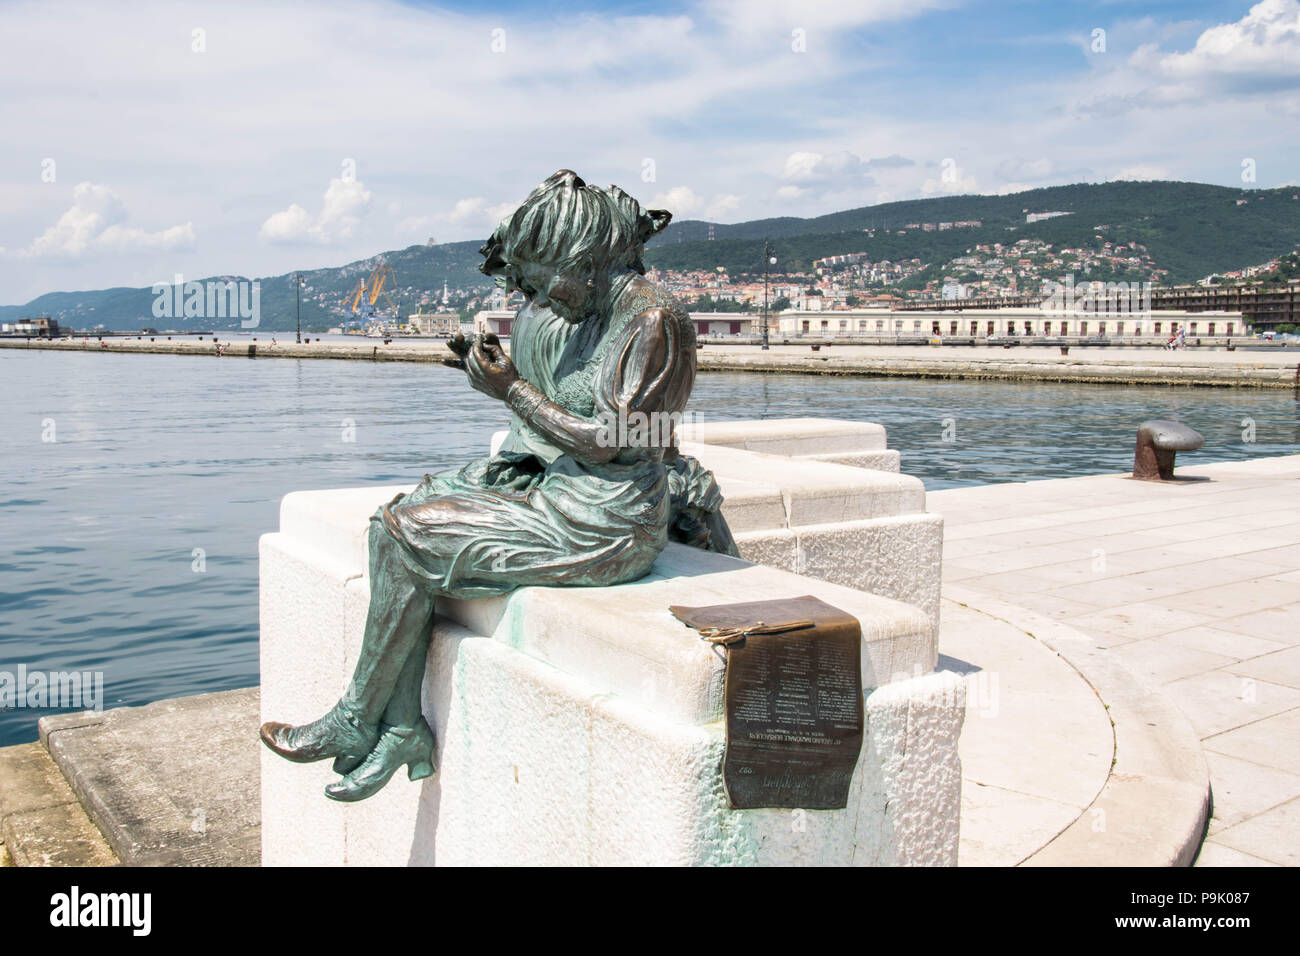 Europe, Italy, Trieste - One of the figures of Scala Reale monument at Trieste, close to the Molo Audace. Stock Photo